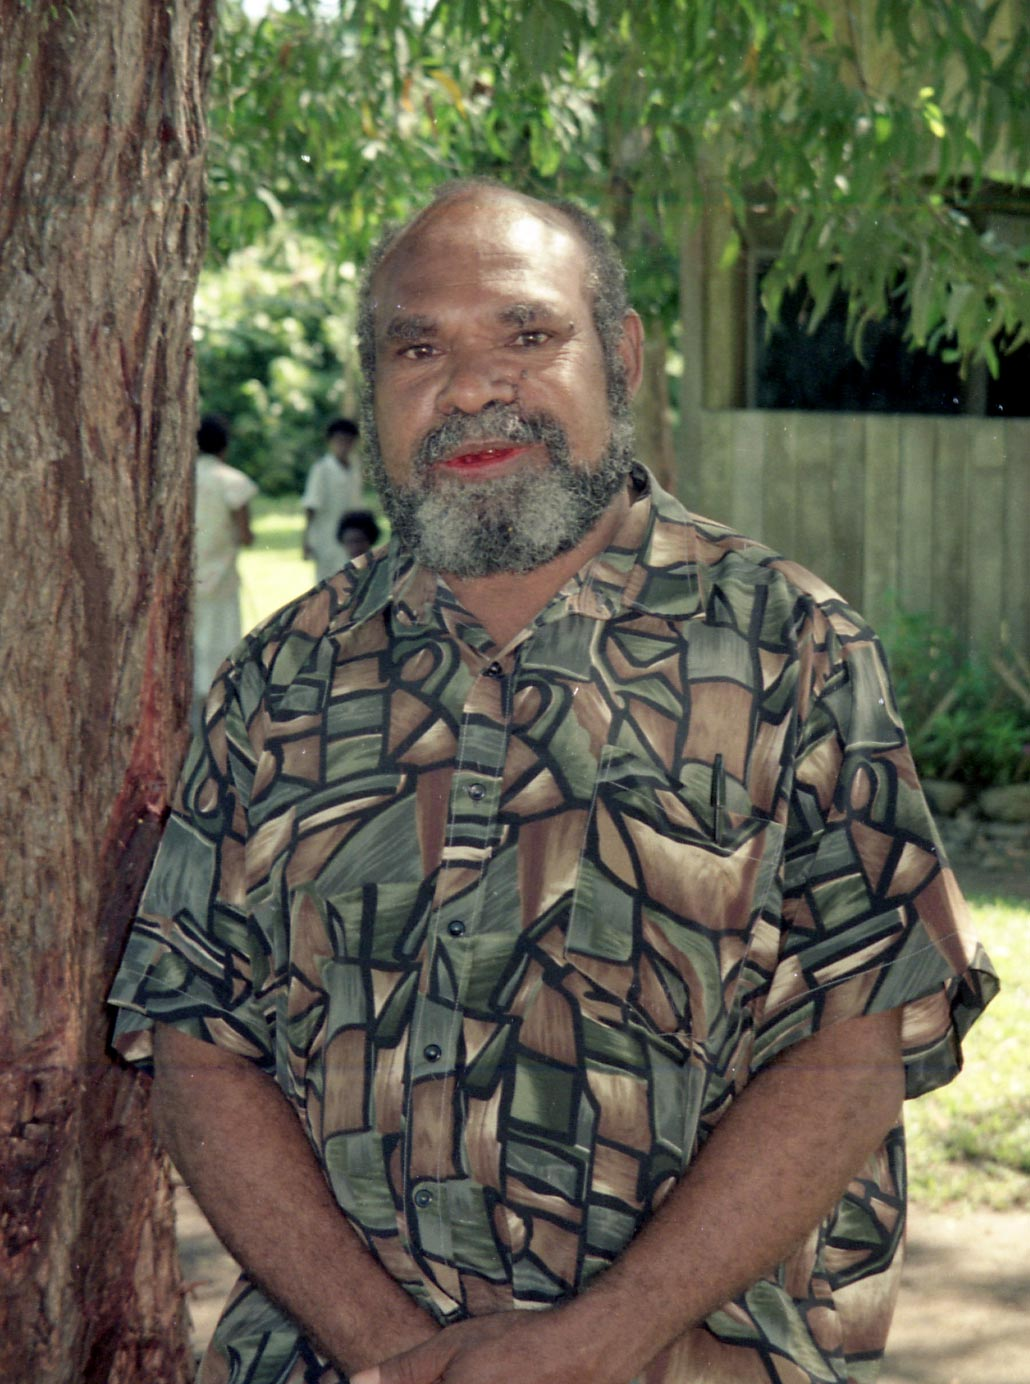 Bernard Narokobi, depicted here in 1998, helped compose the constitution for his country, Papua New Guinea, which gained independence in 1975.